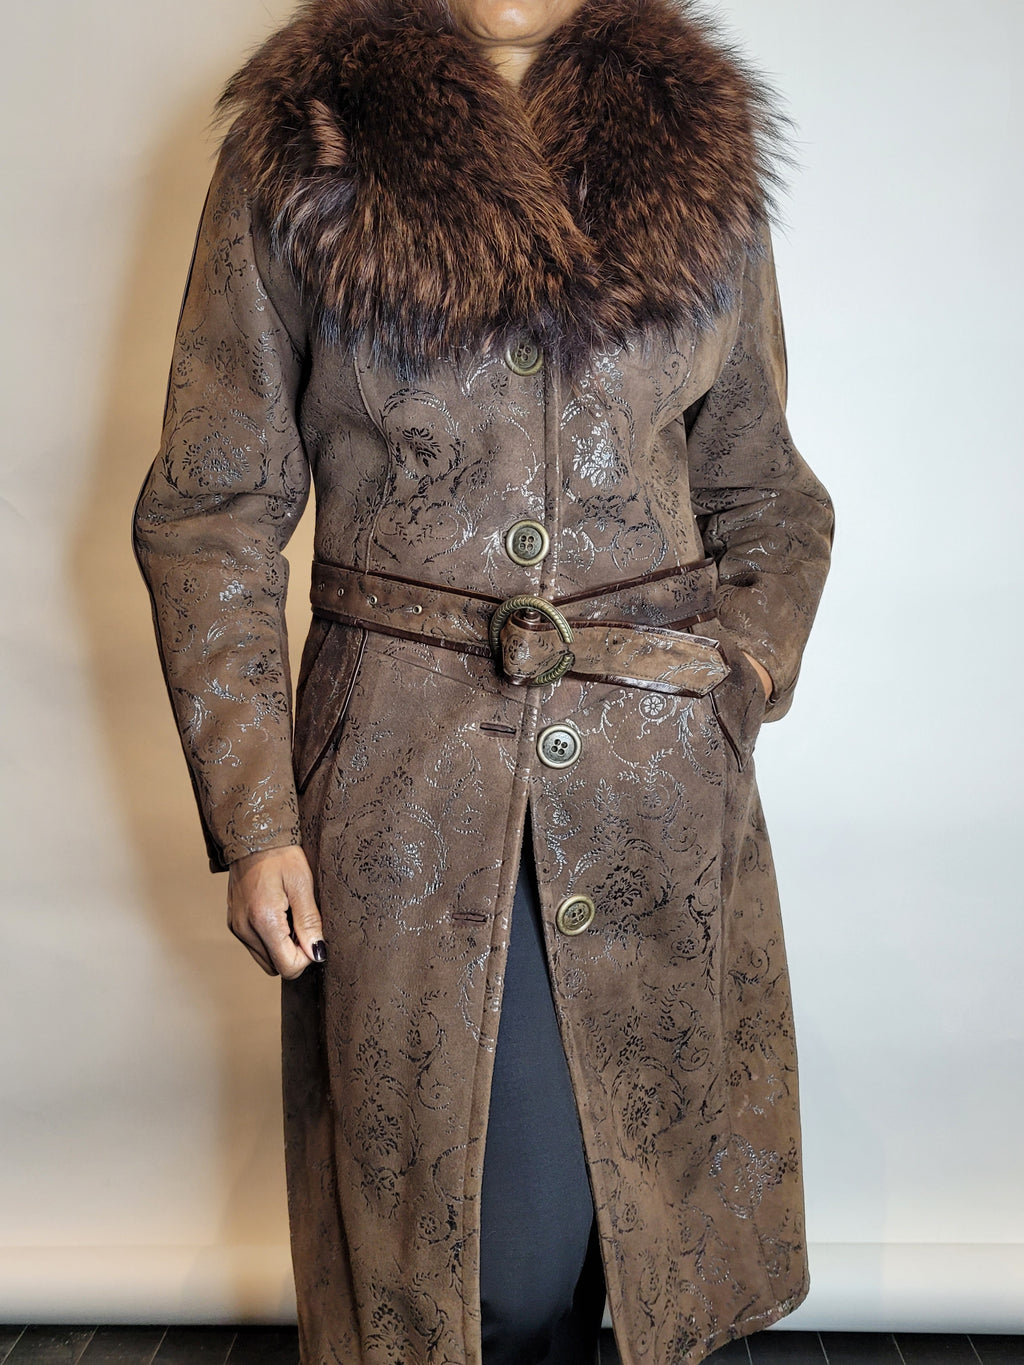 3/4 Length Chocolate Brown Shearling